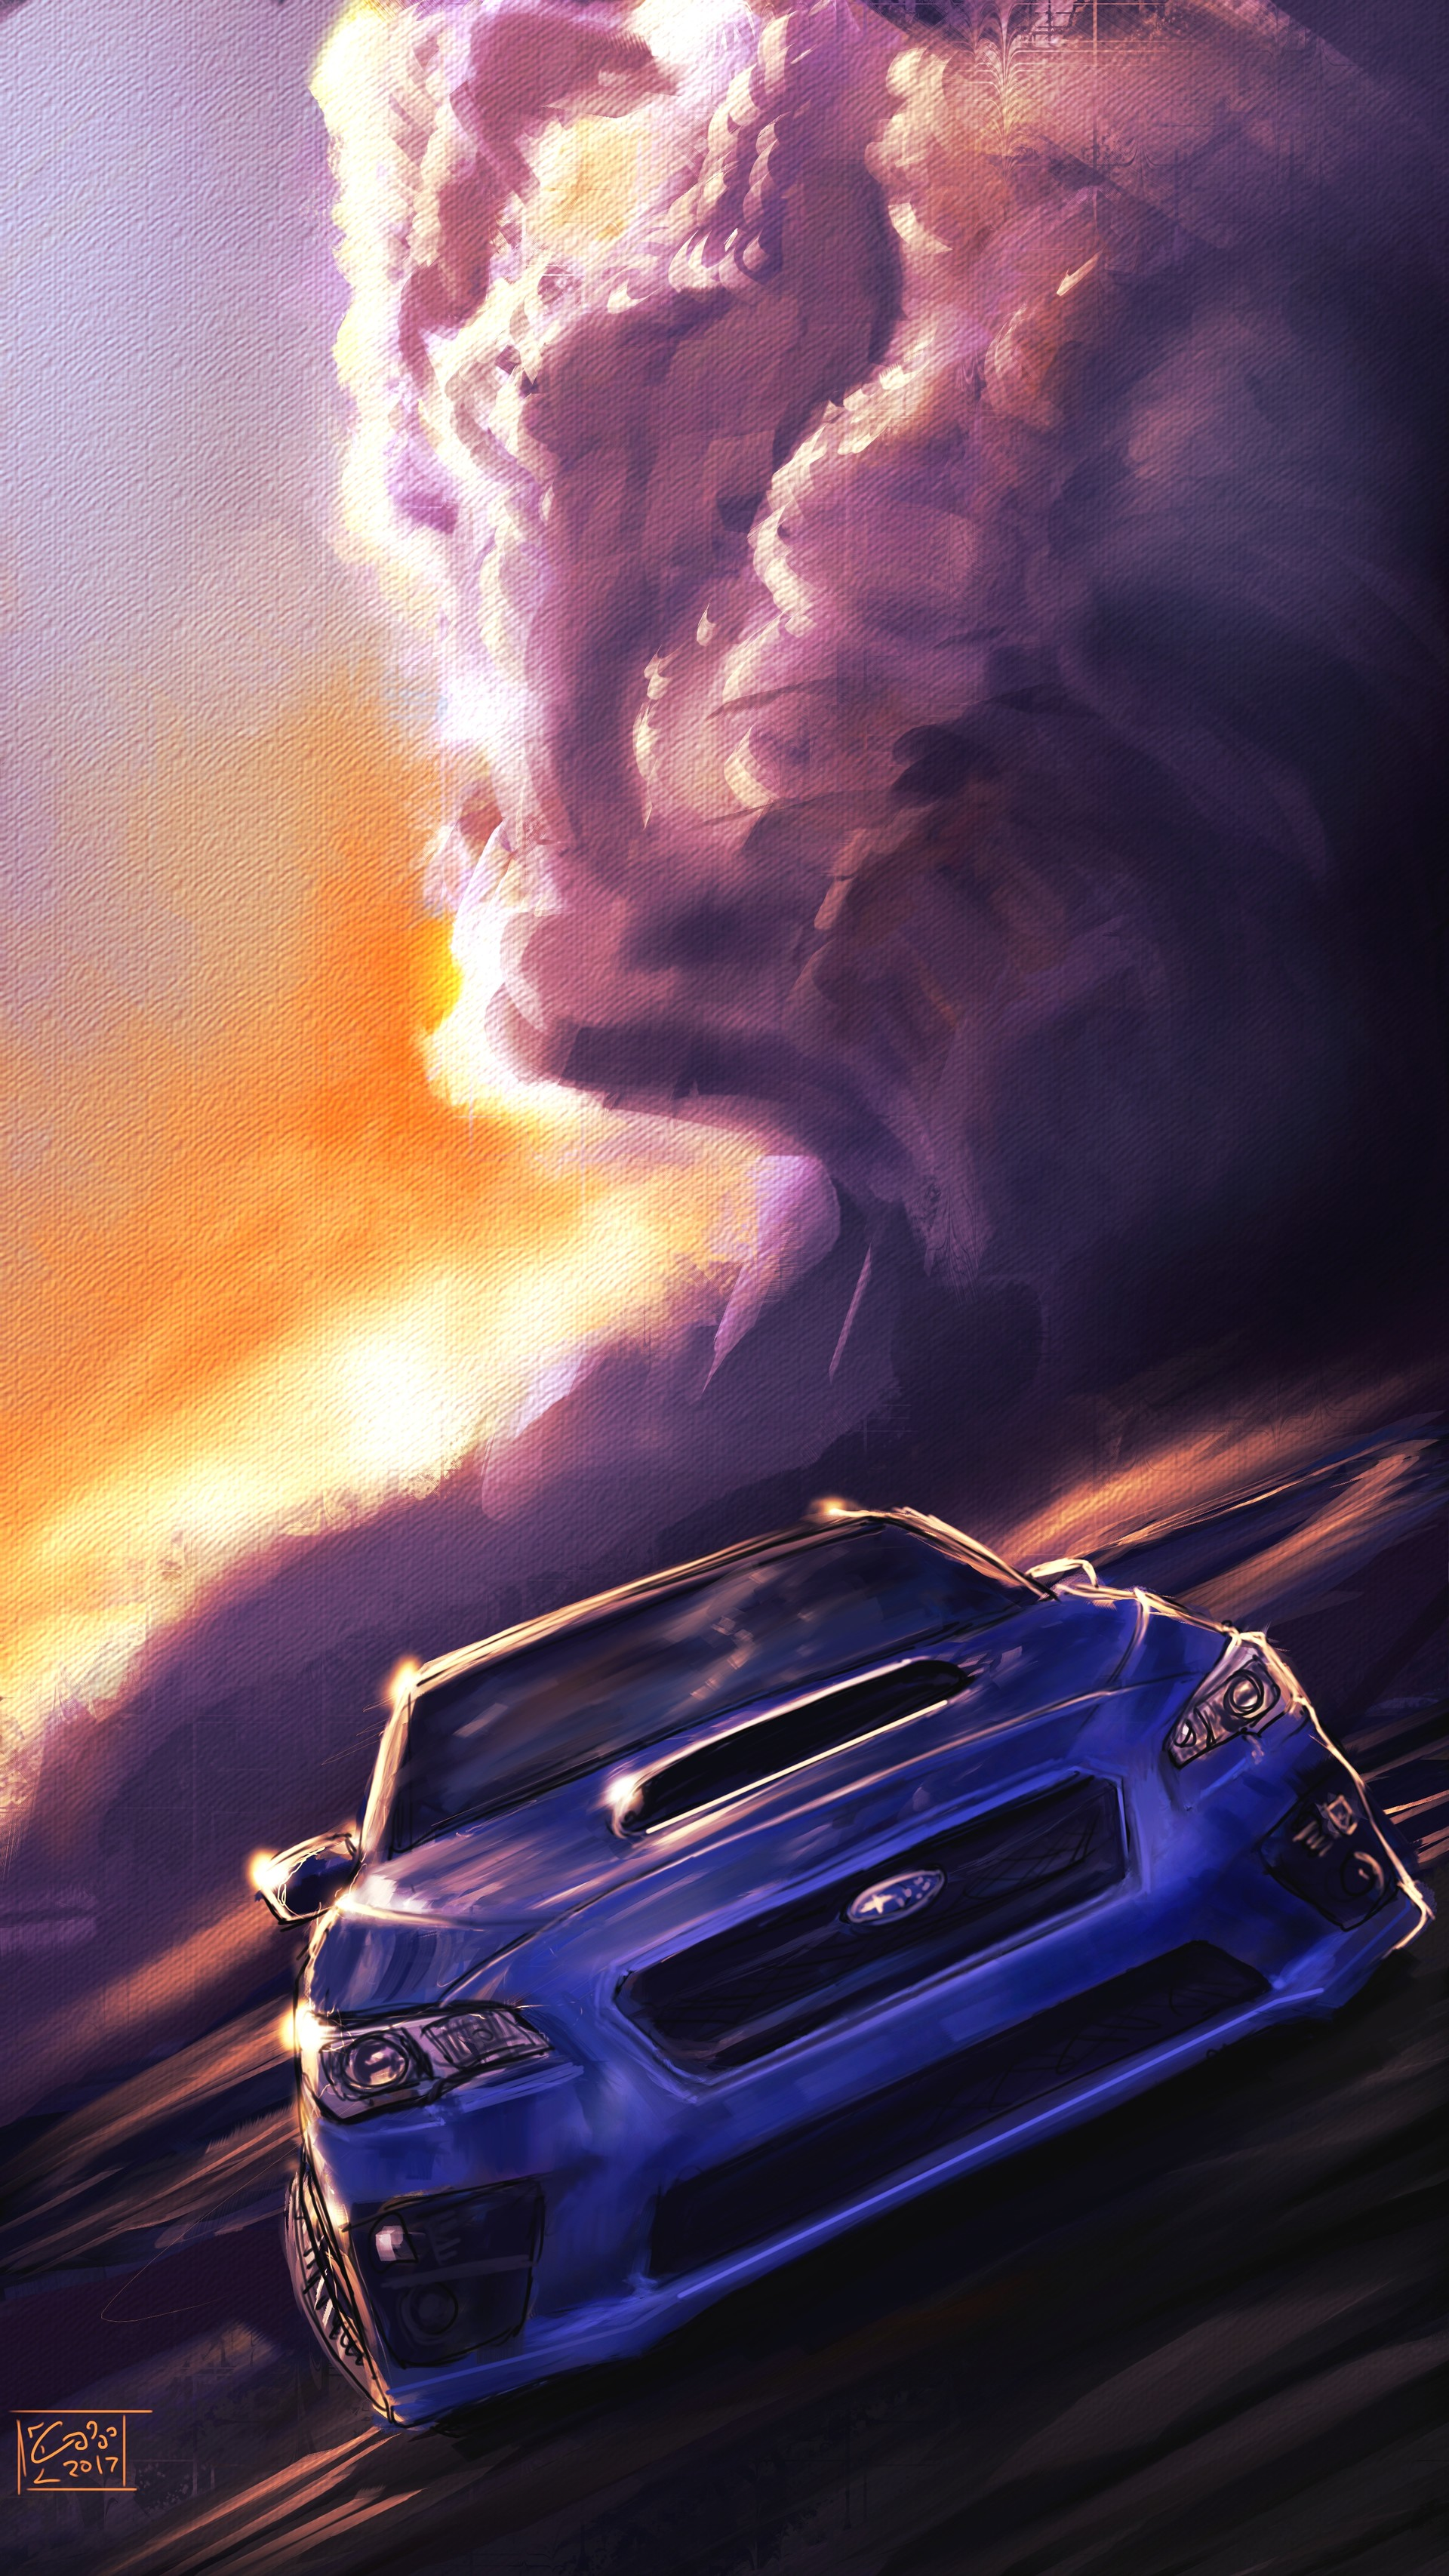 Outrun the Storm